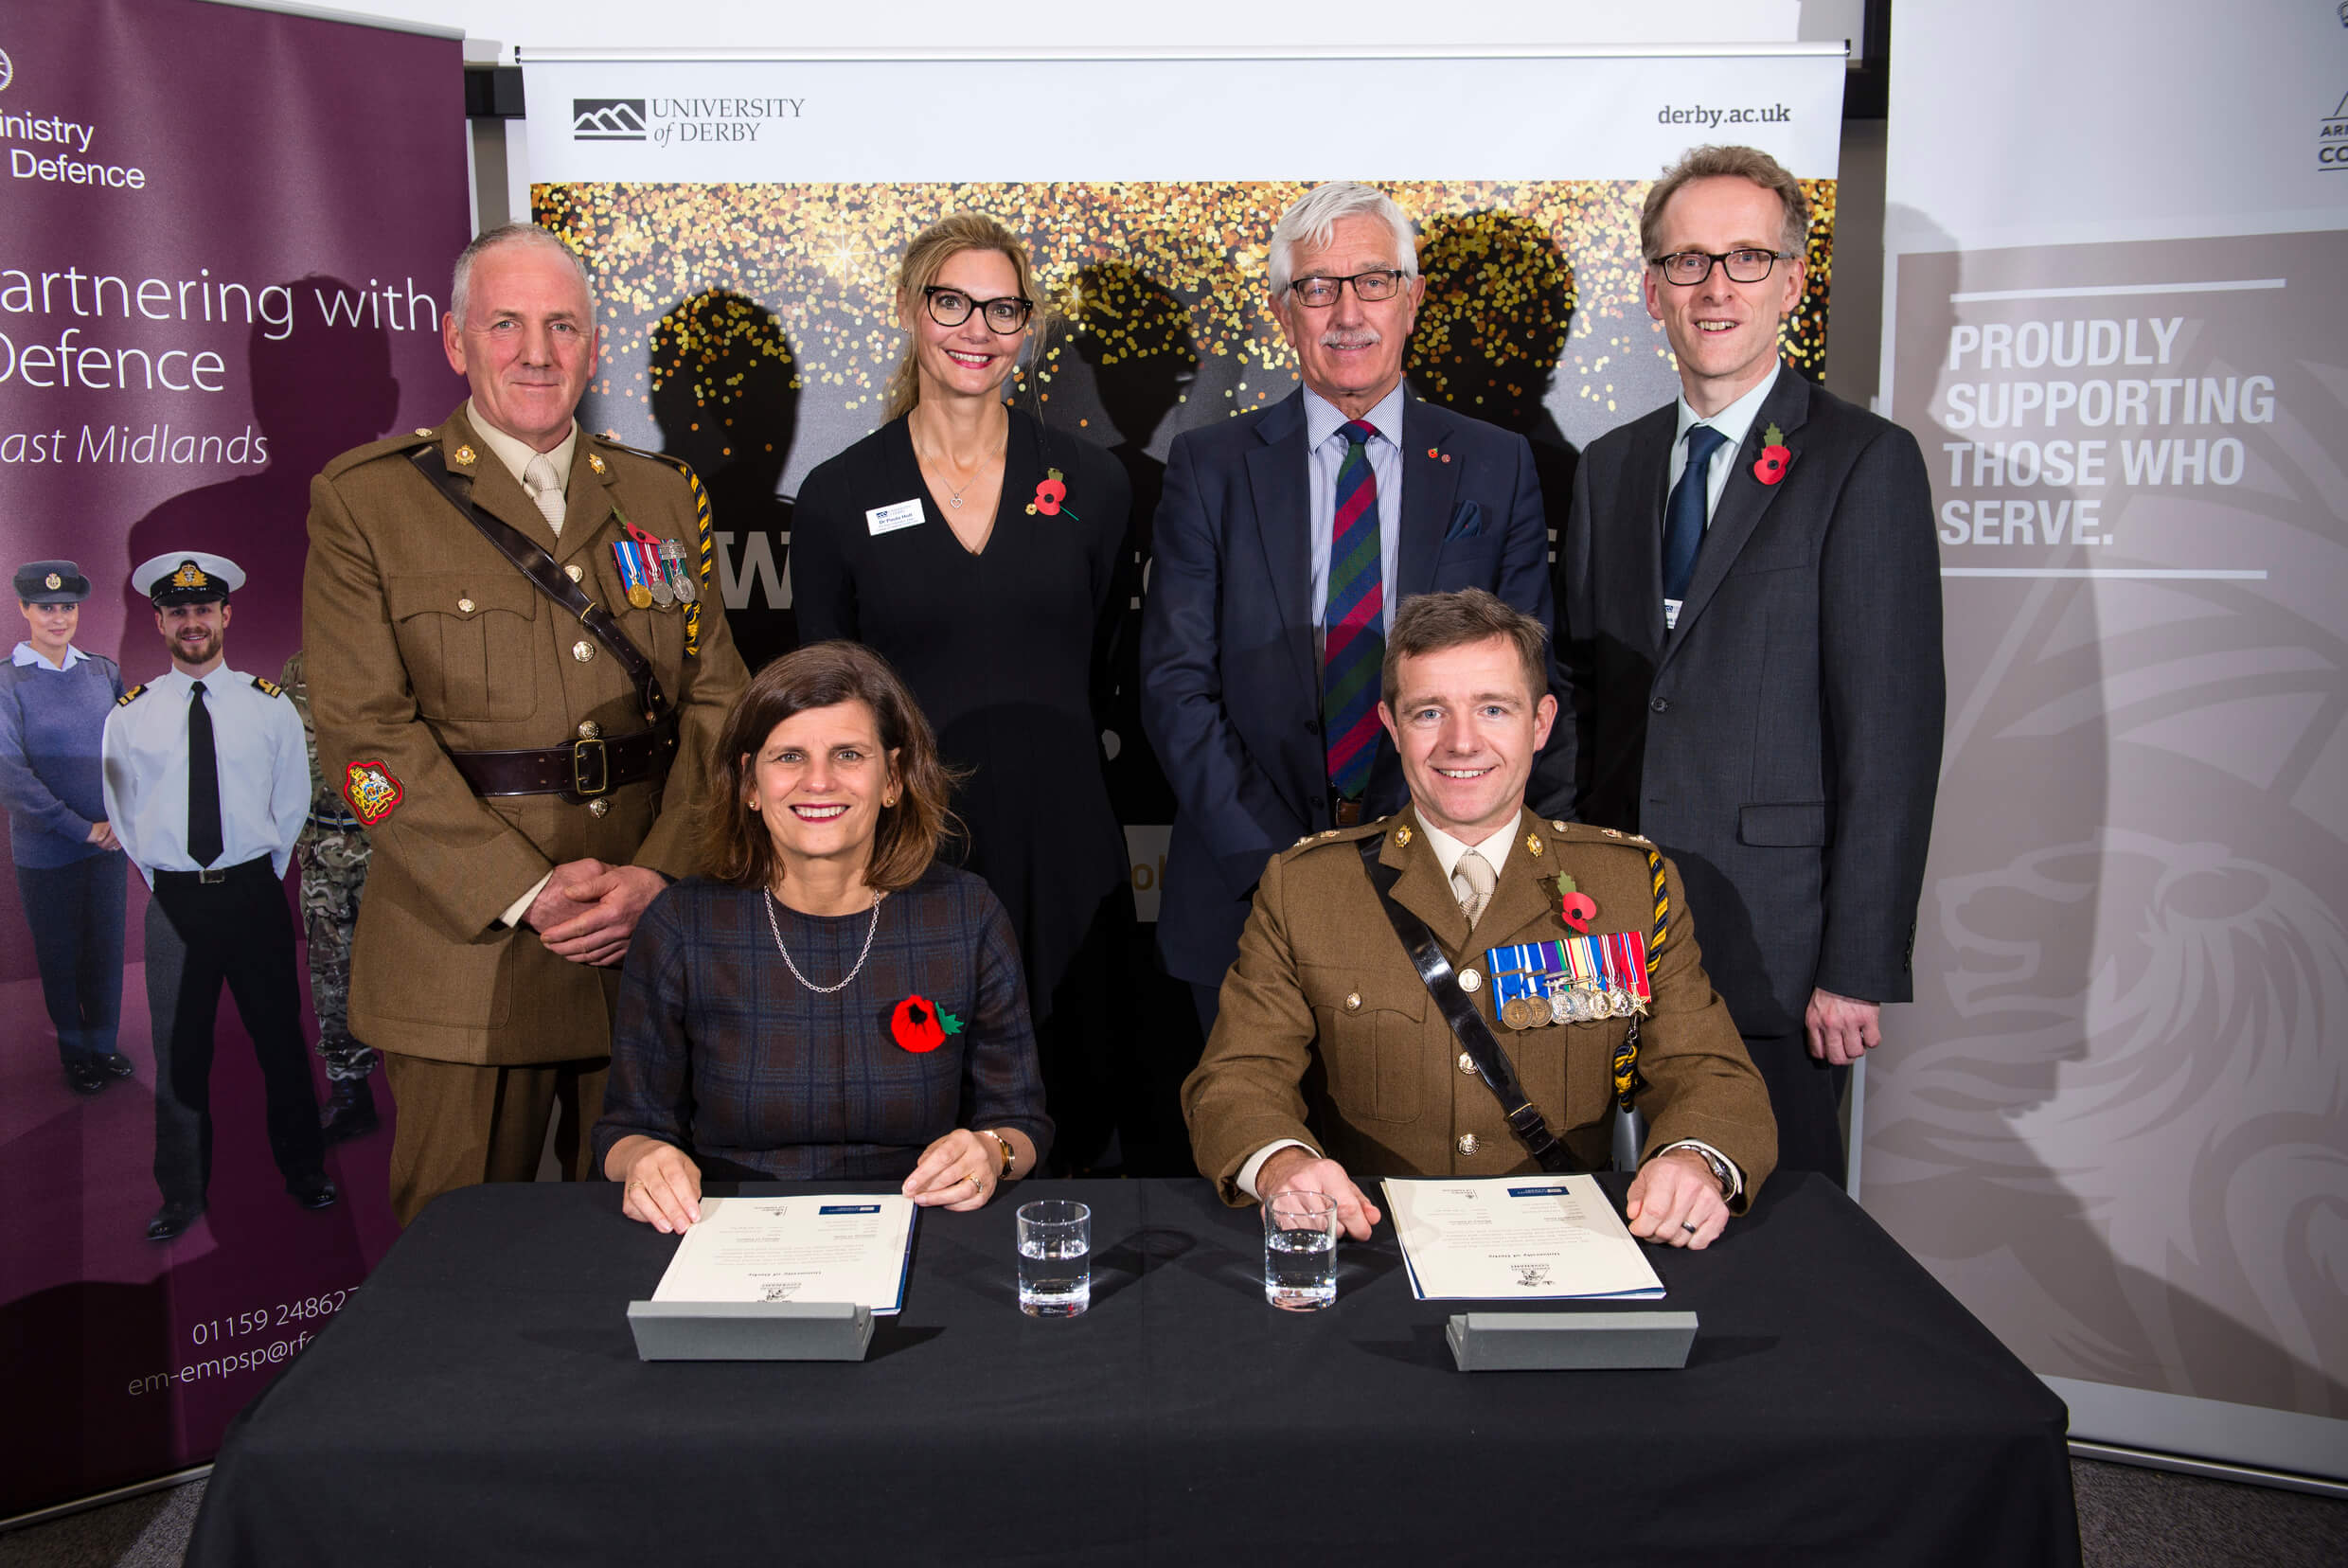 Signing of the Armed Forces Covenant at University of Derby